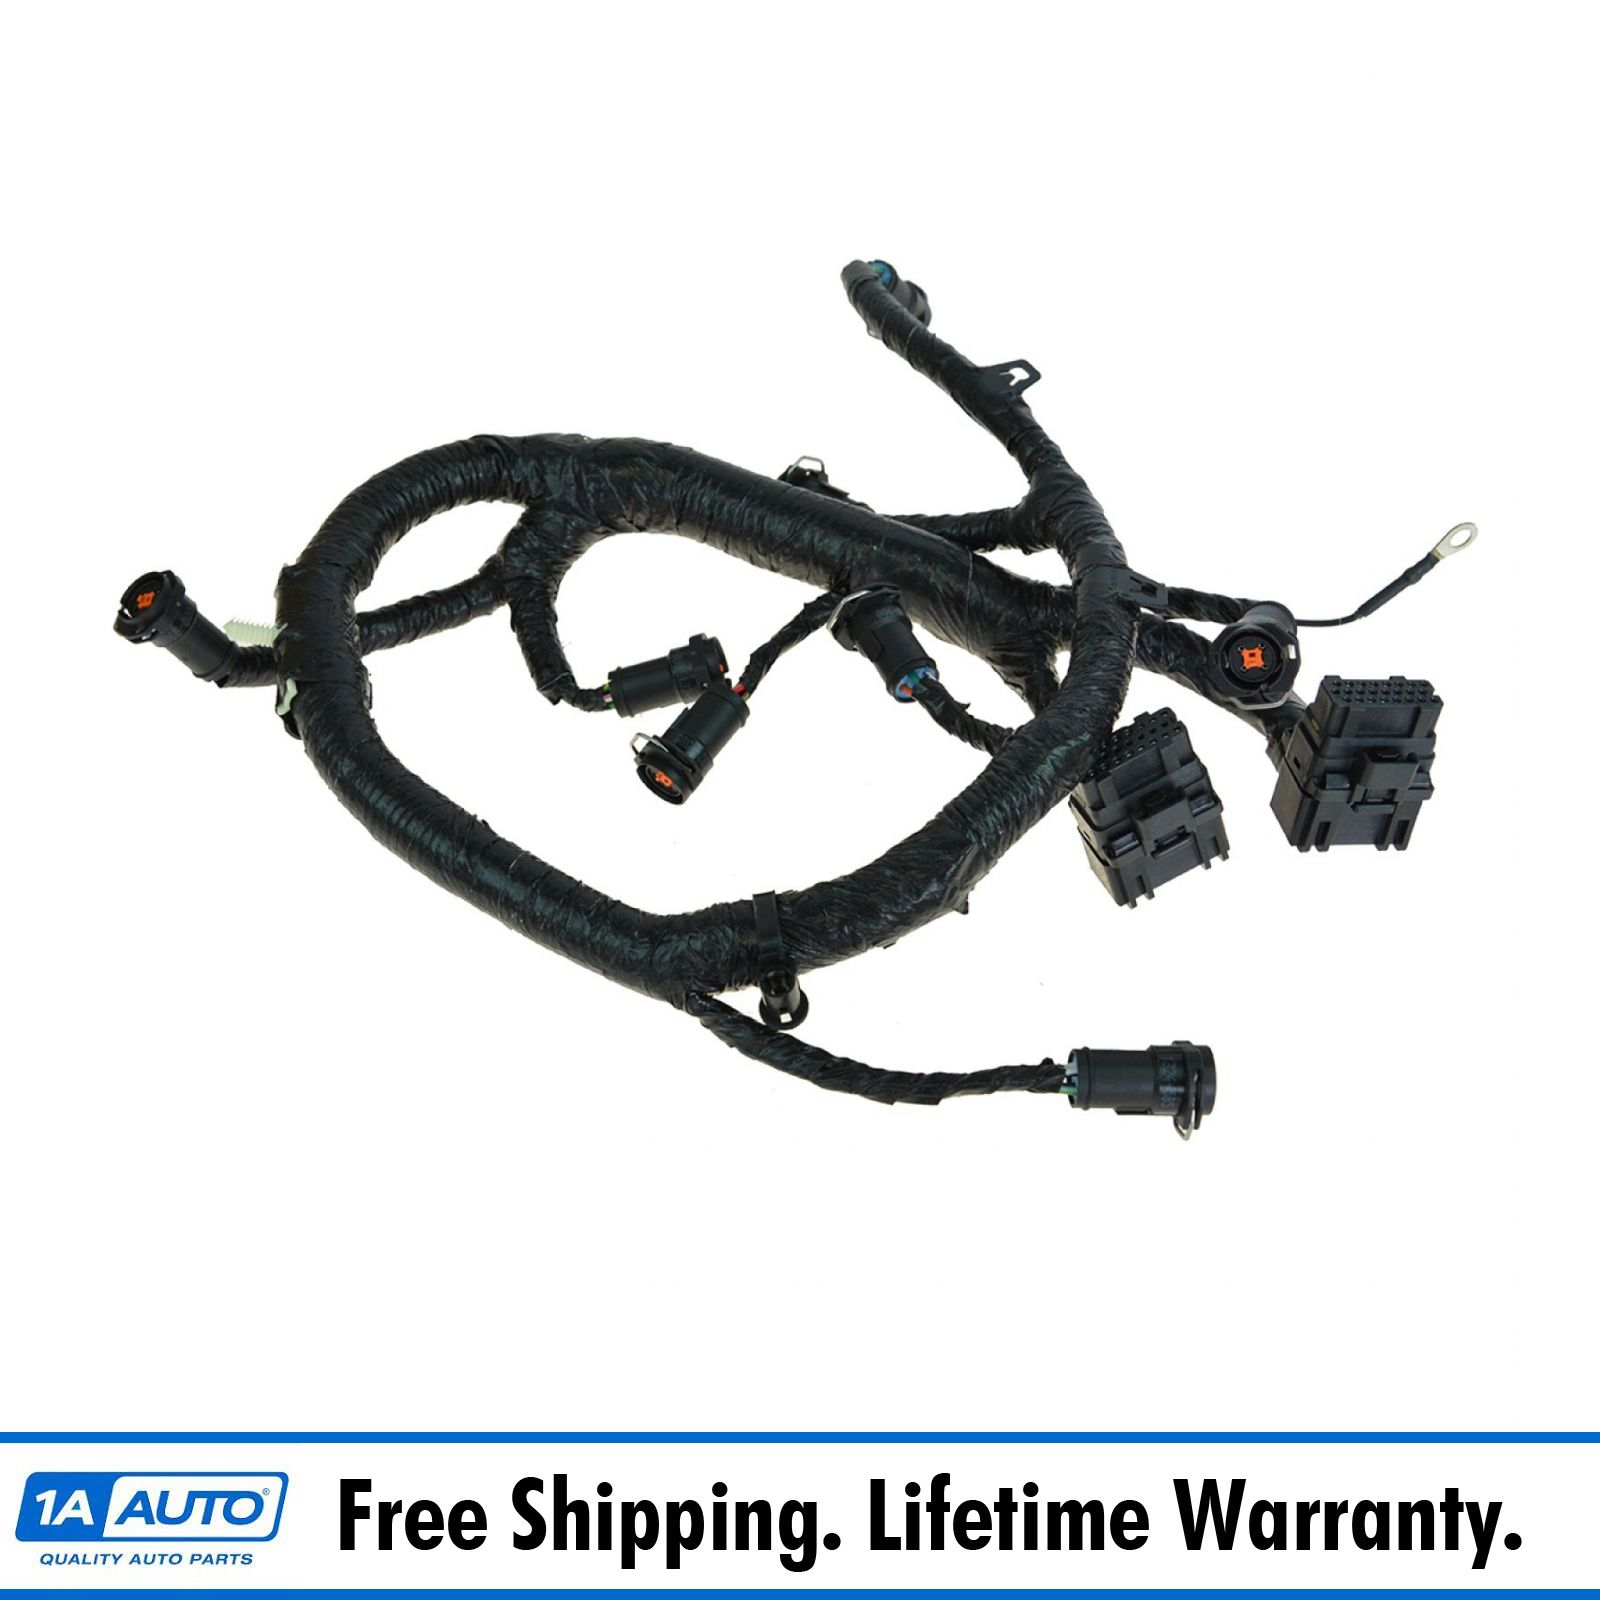 hight resolution of details about oem fuel injector wiring harness for 05 07 ford diesel truck